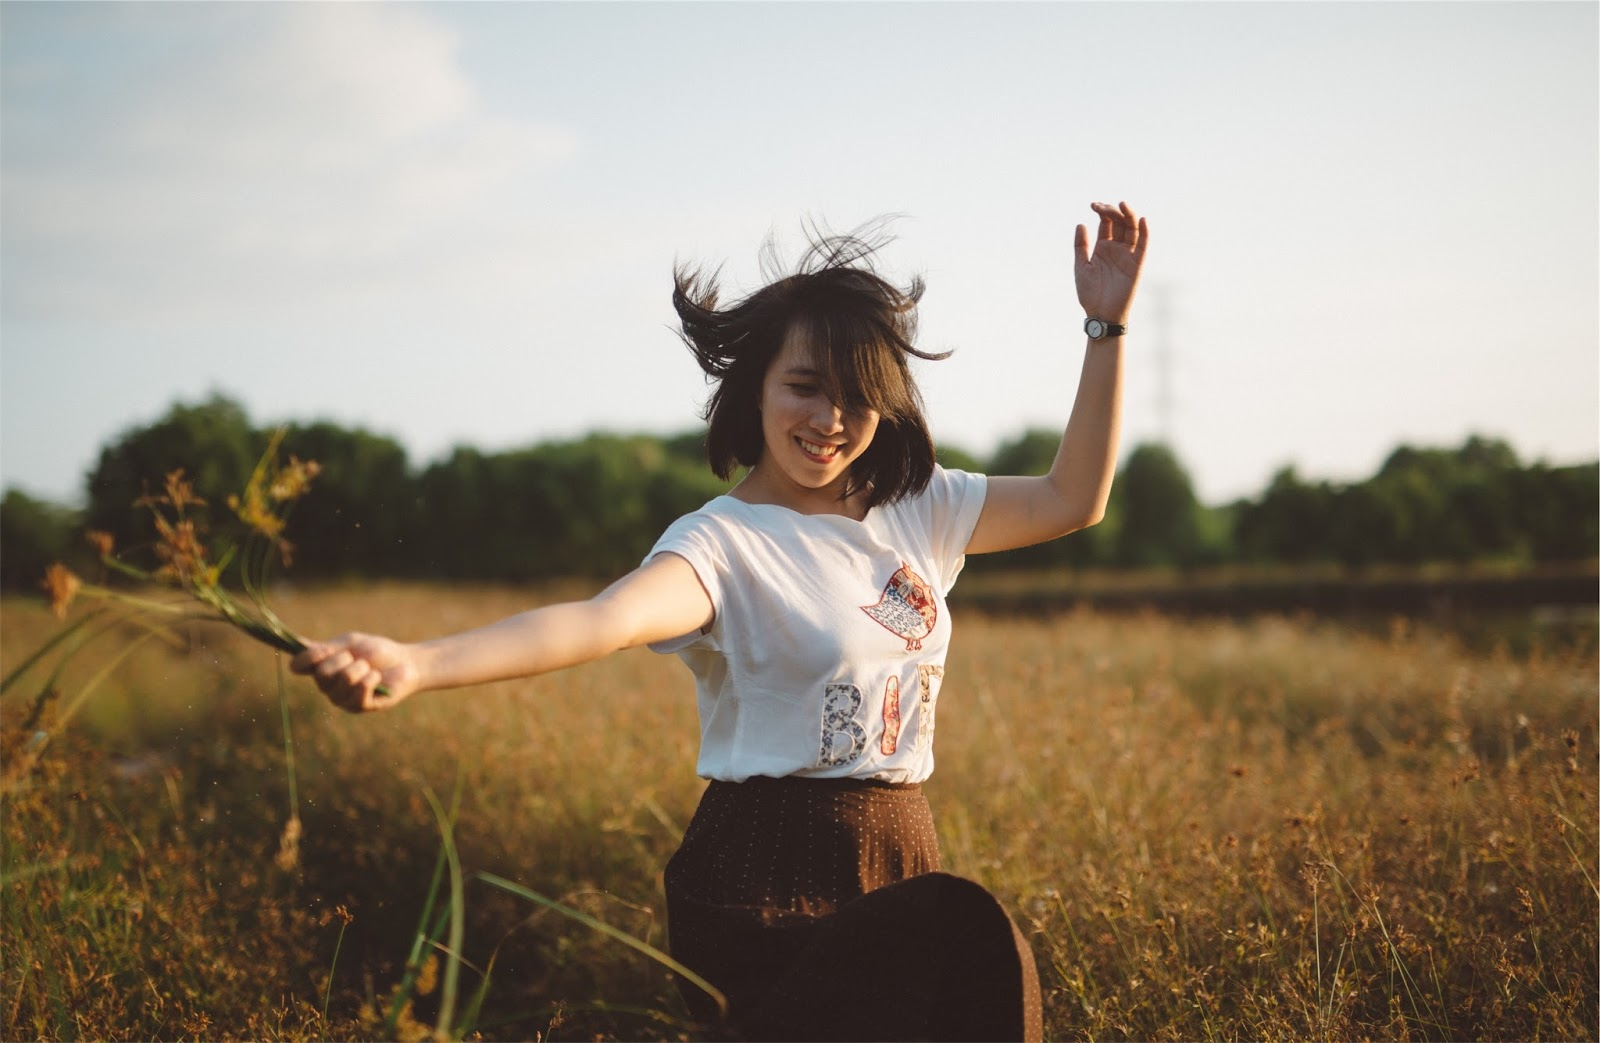 Woman dancing through a field - 20 easy ways to recharge your batteries - stress management - motherdistracted.co.uk